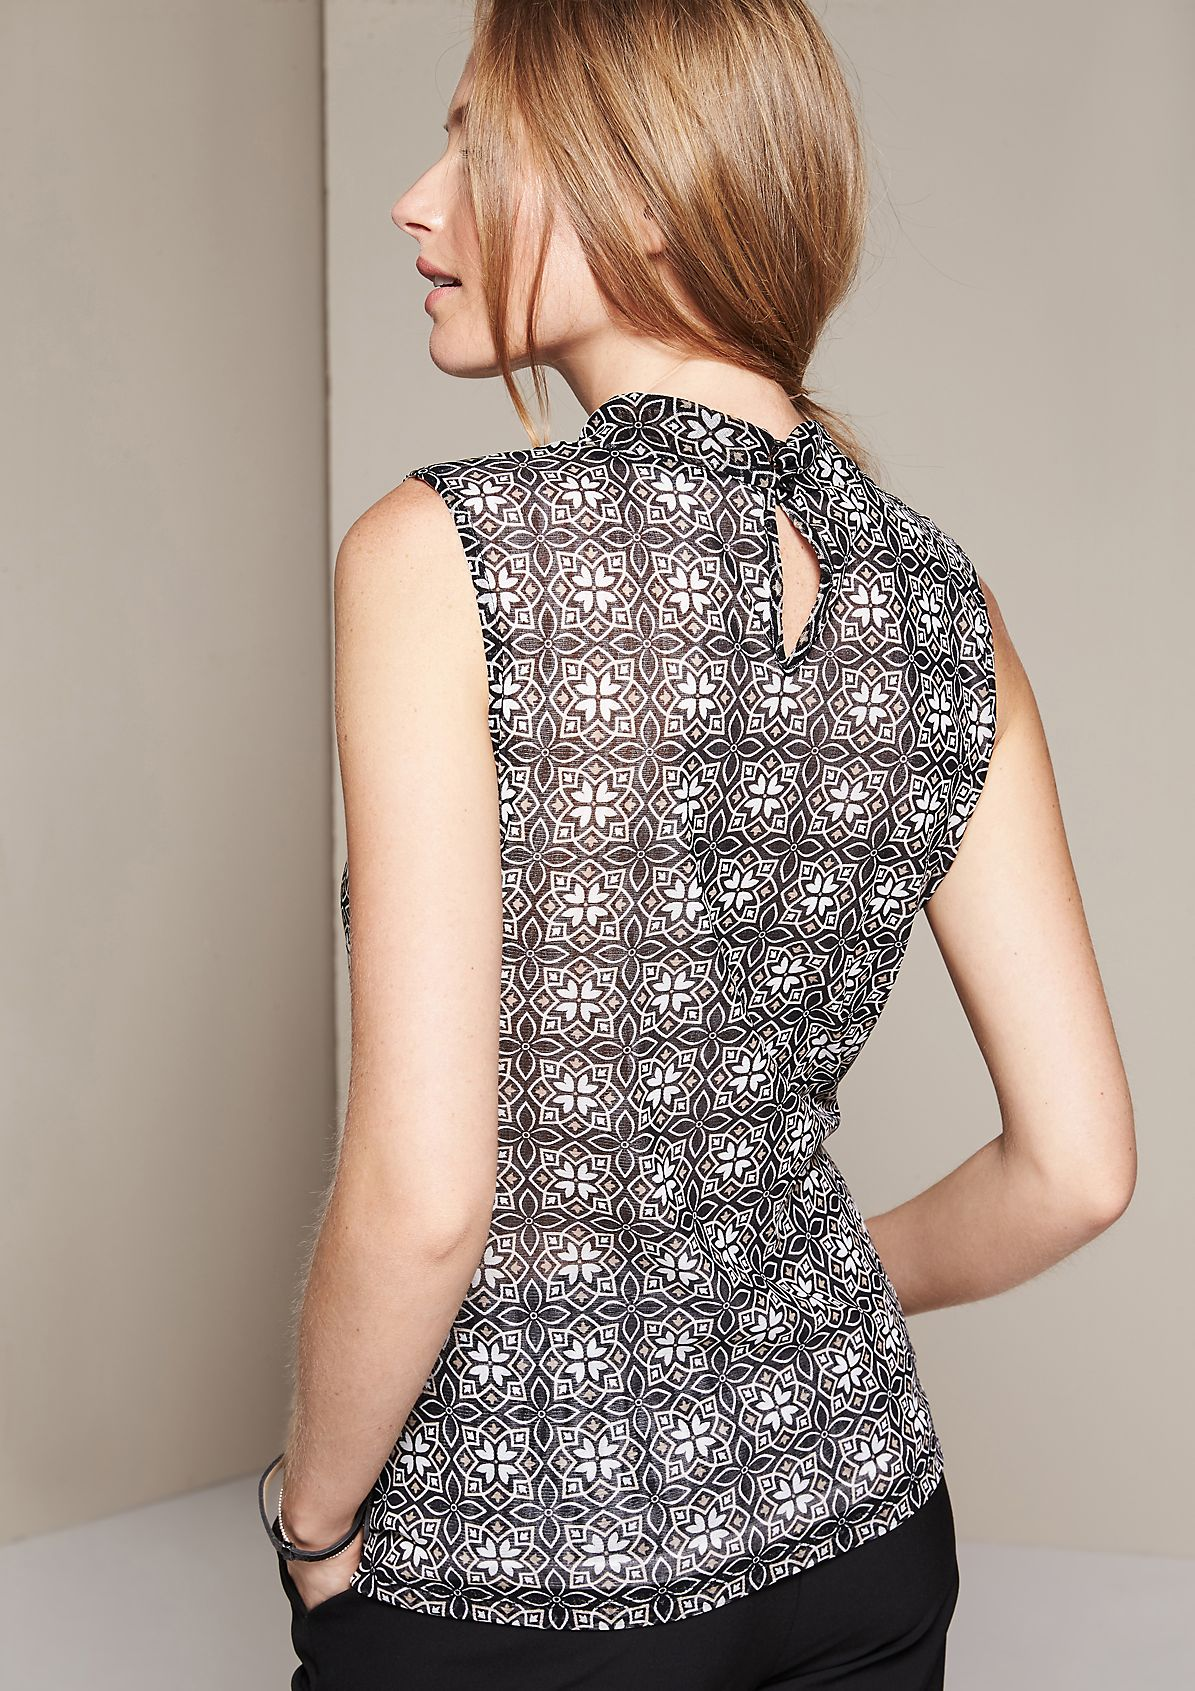 Delicate mesh top with an exciting all-over print from s.Oliver